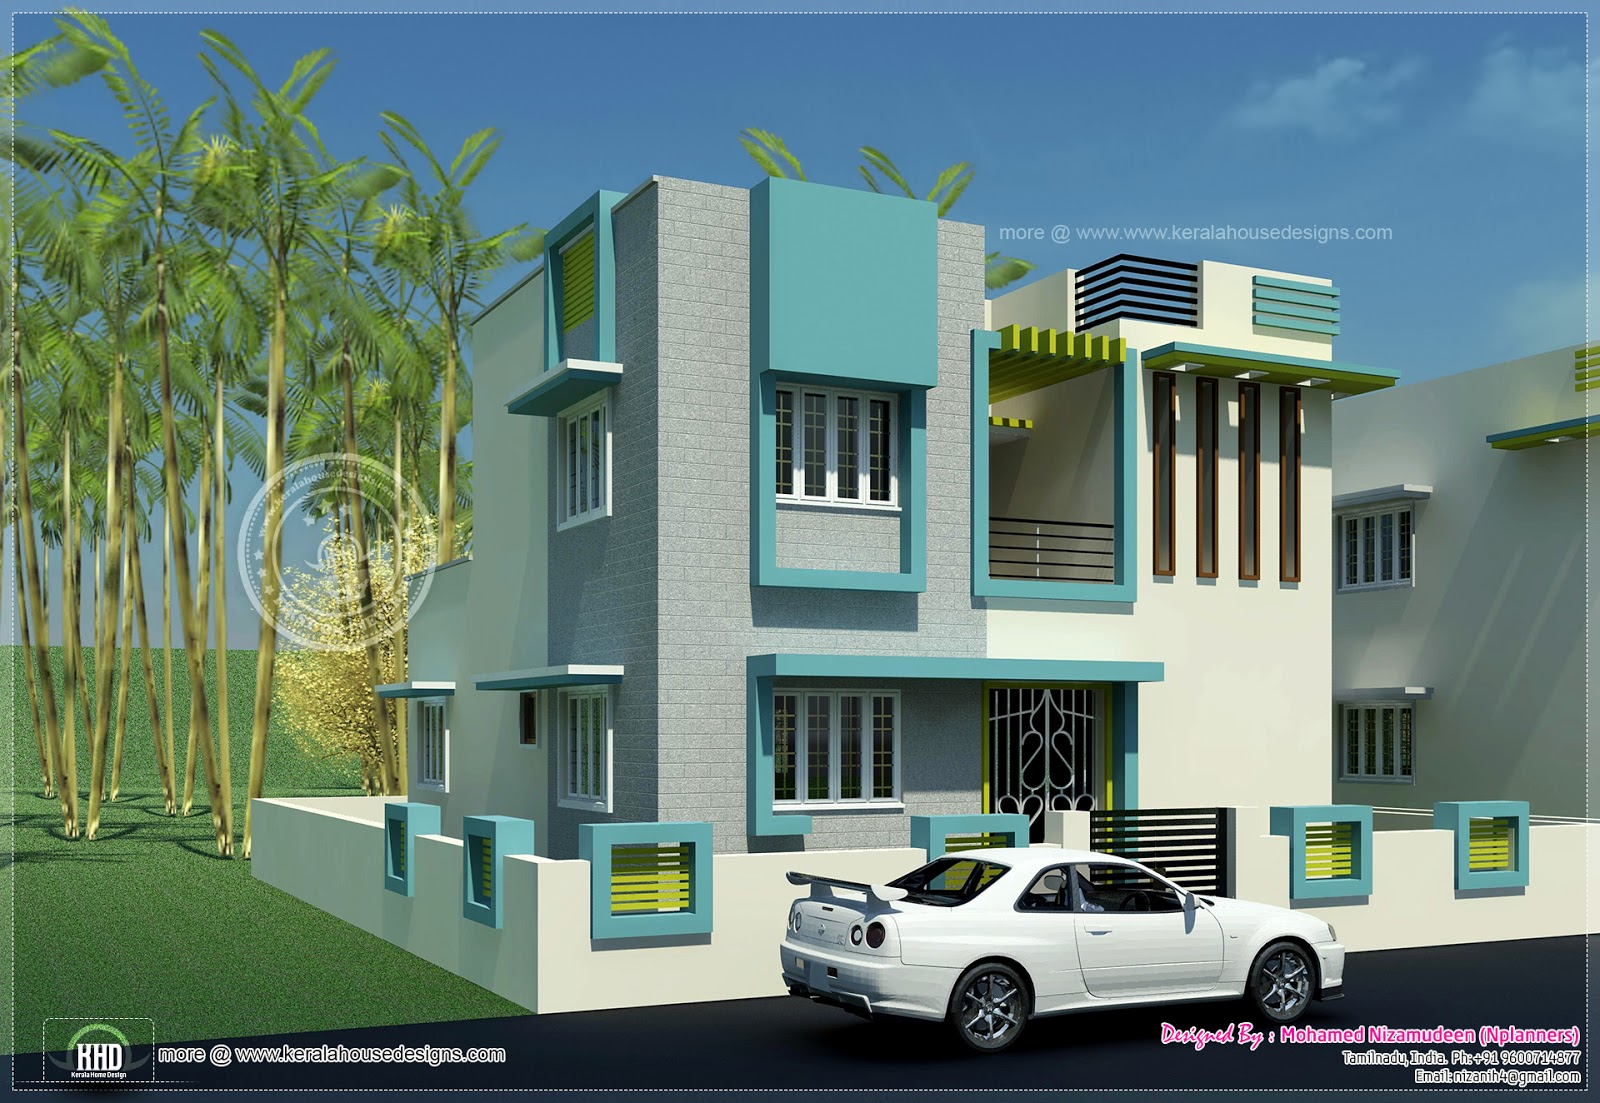 ... sq.feet South India house plan - Kerala home design and floor plans